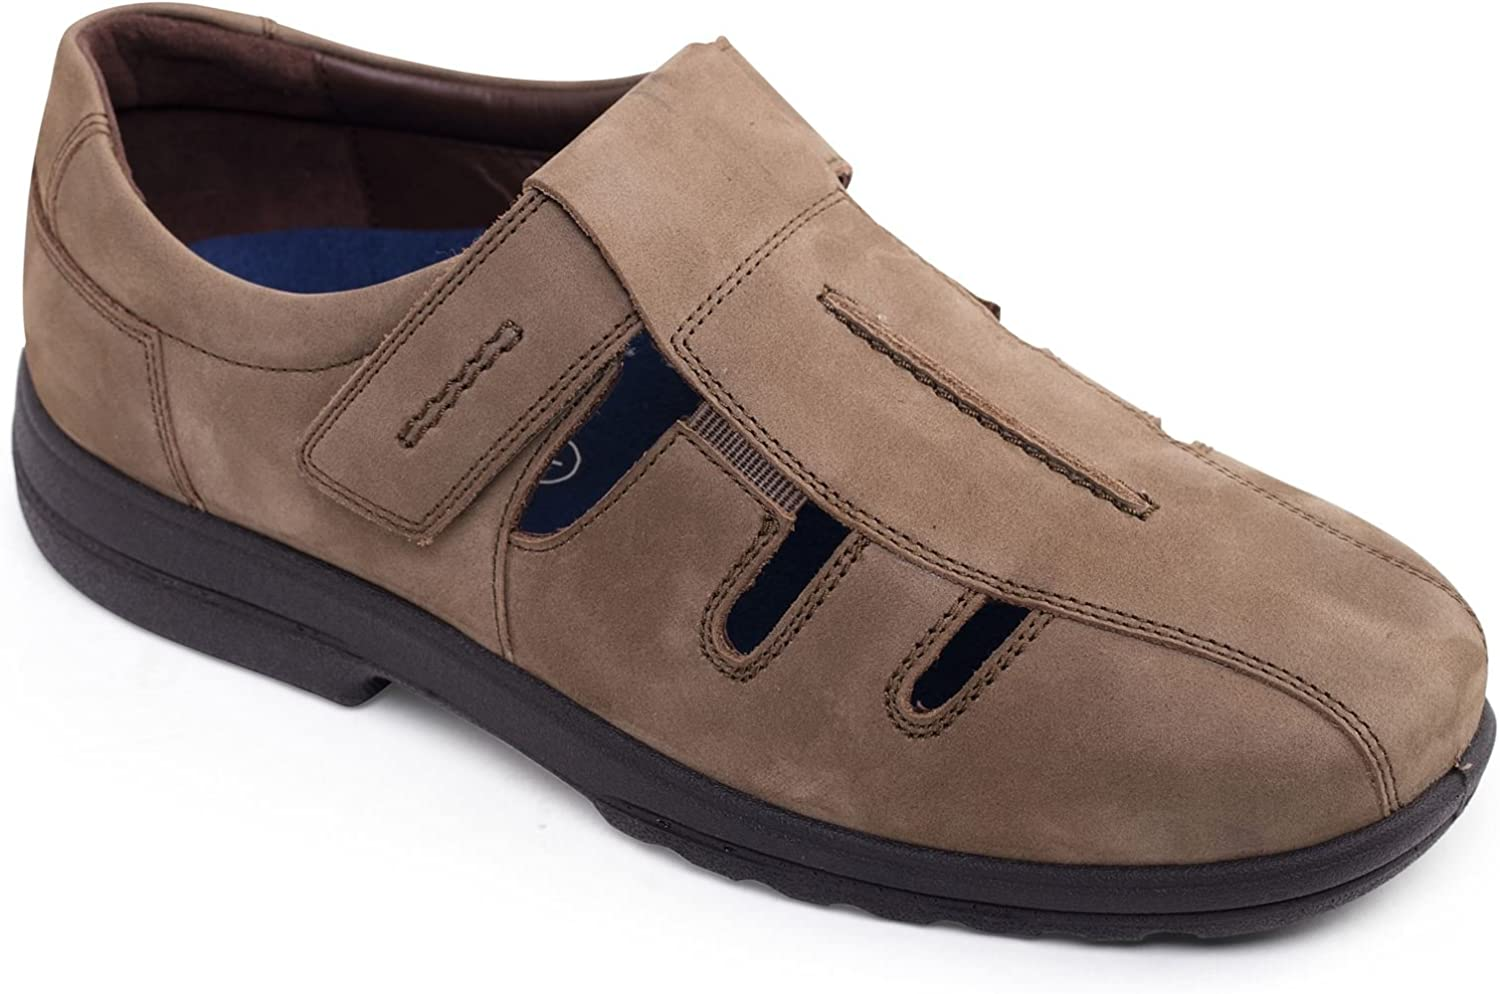 Padders Plus Men's Leather shoes 'Dawlish'   Plus+ Range For Extra Width & Depth   Dual Fit System   Ultra Wide H-K Fit   Free Footcare UK shoes Horn